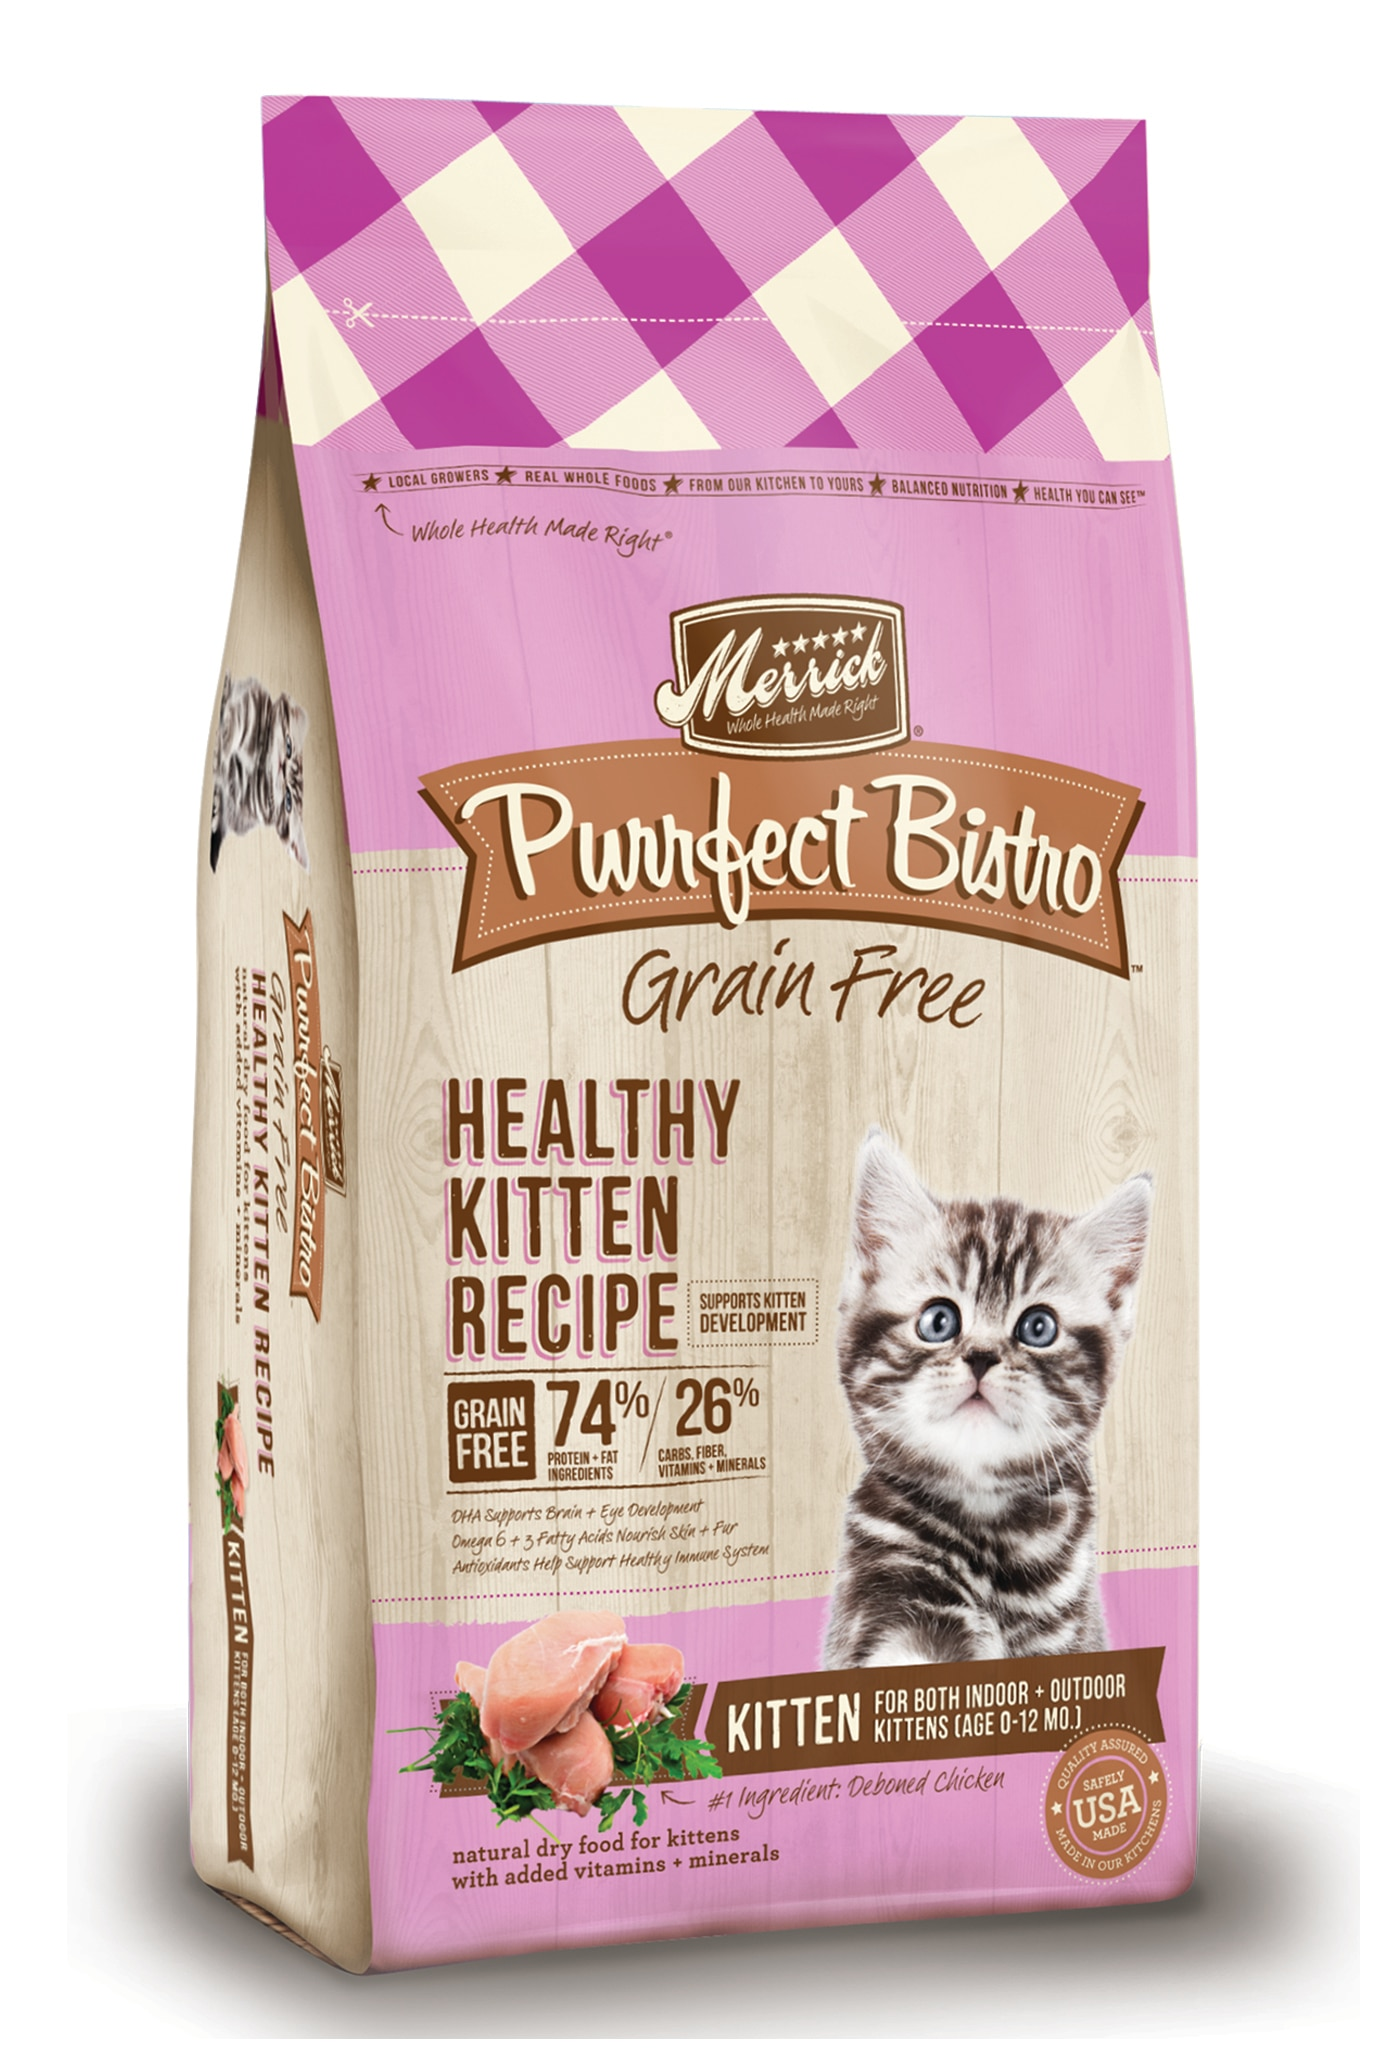 Grain Free Kitten Food Purrfect Bistro Grain Free Kitten Recipe